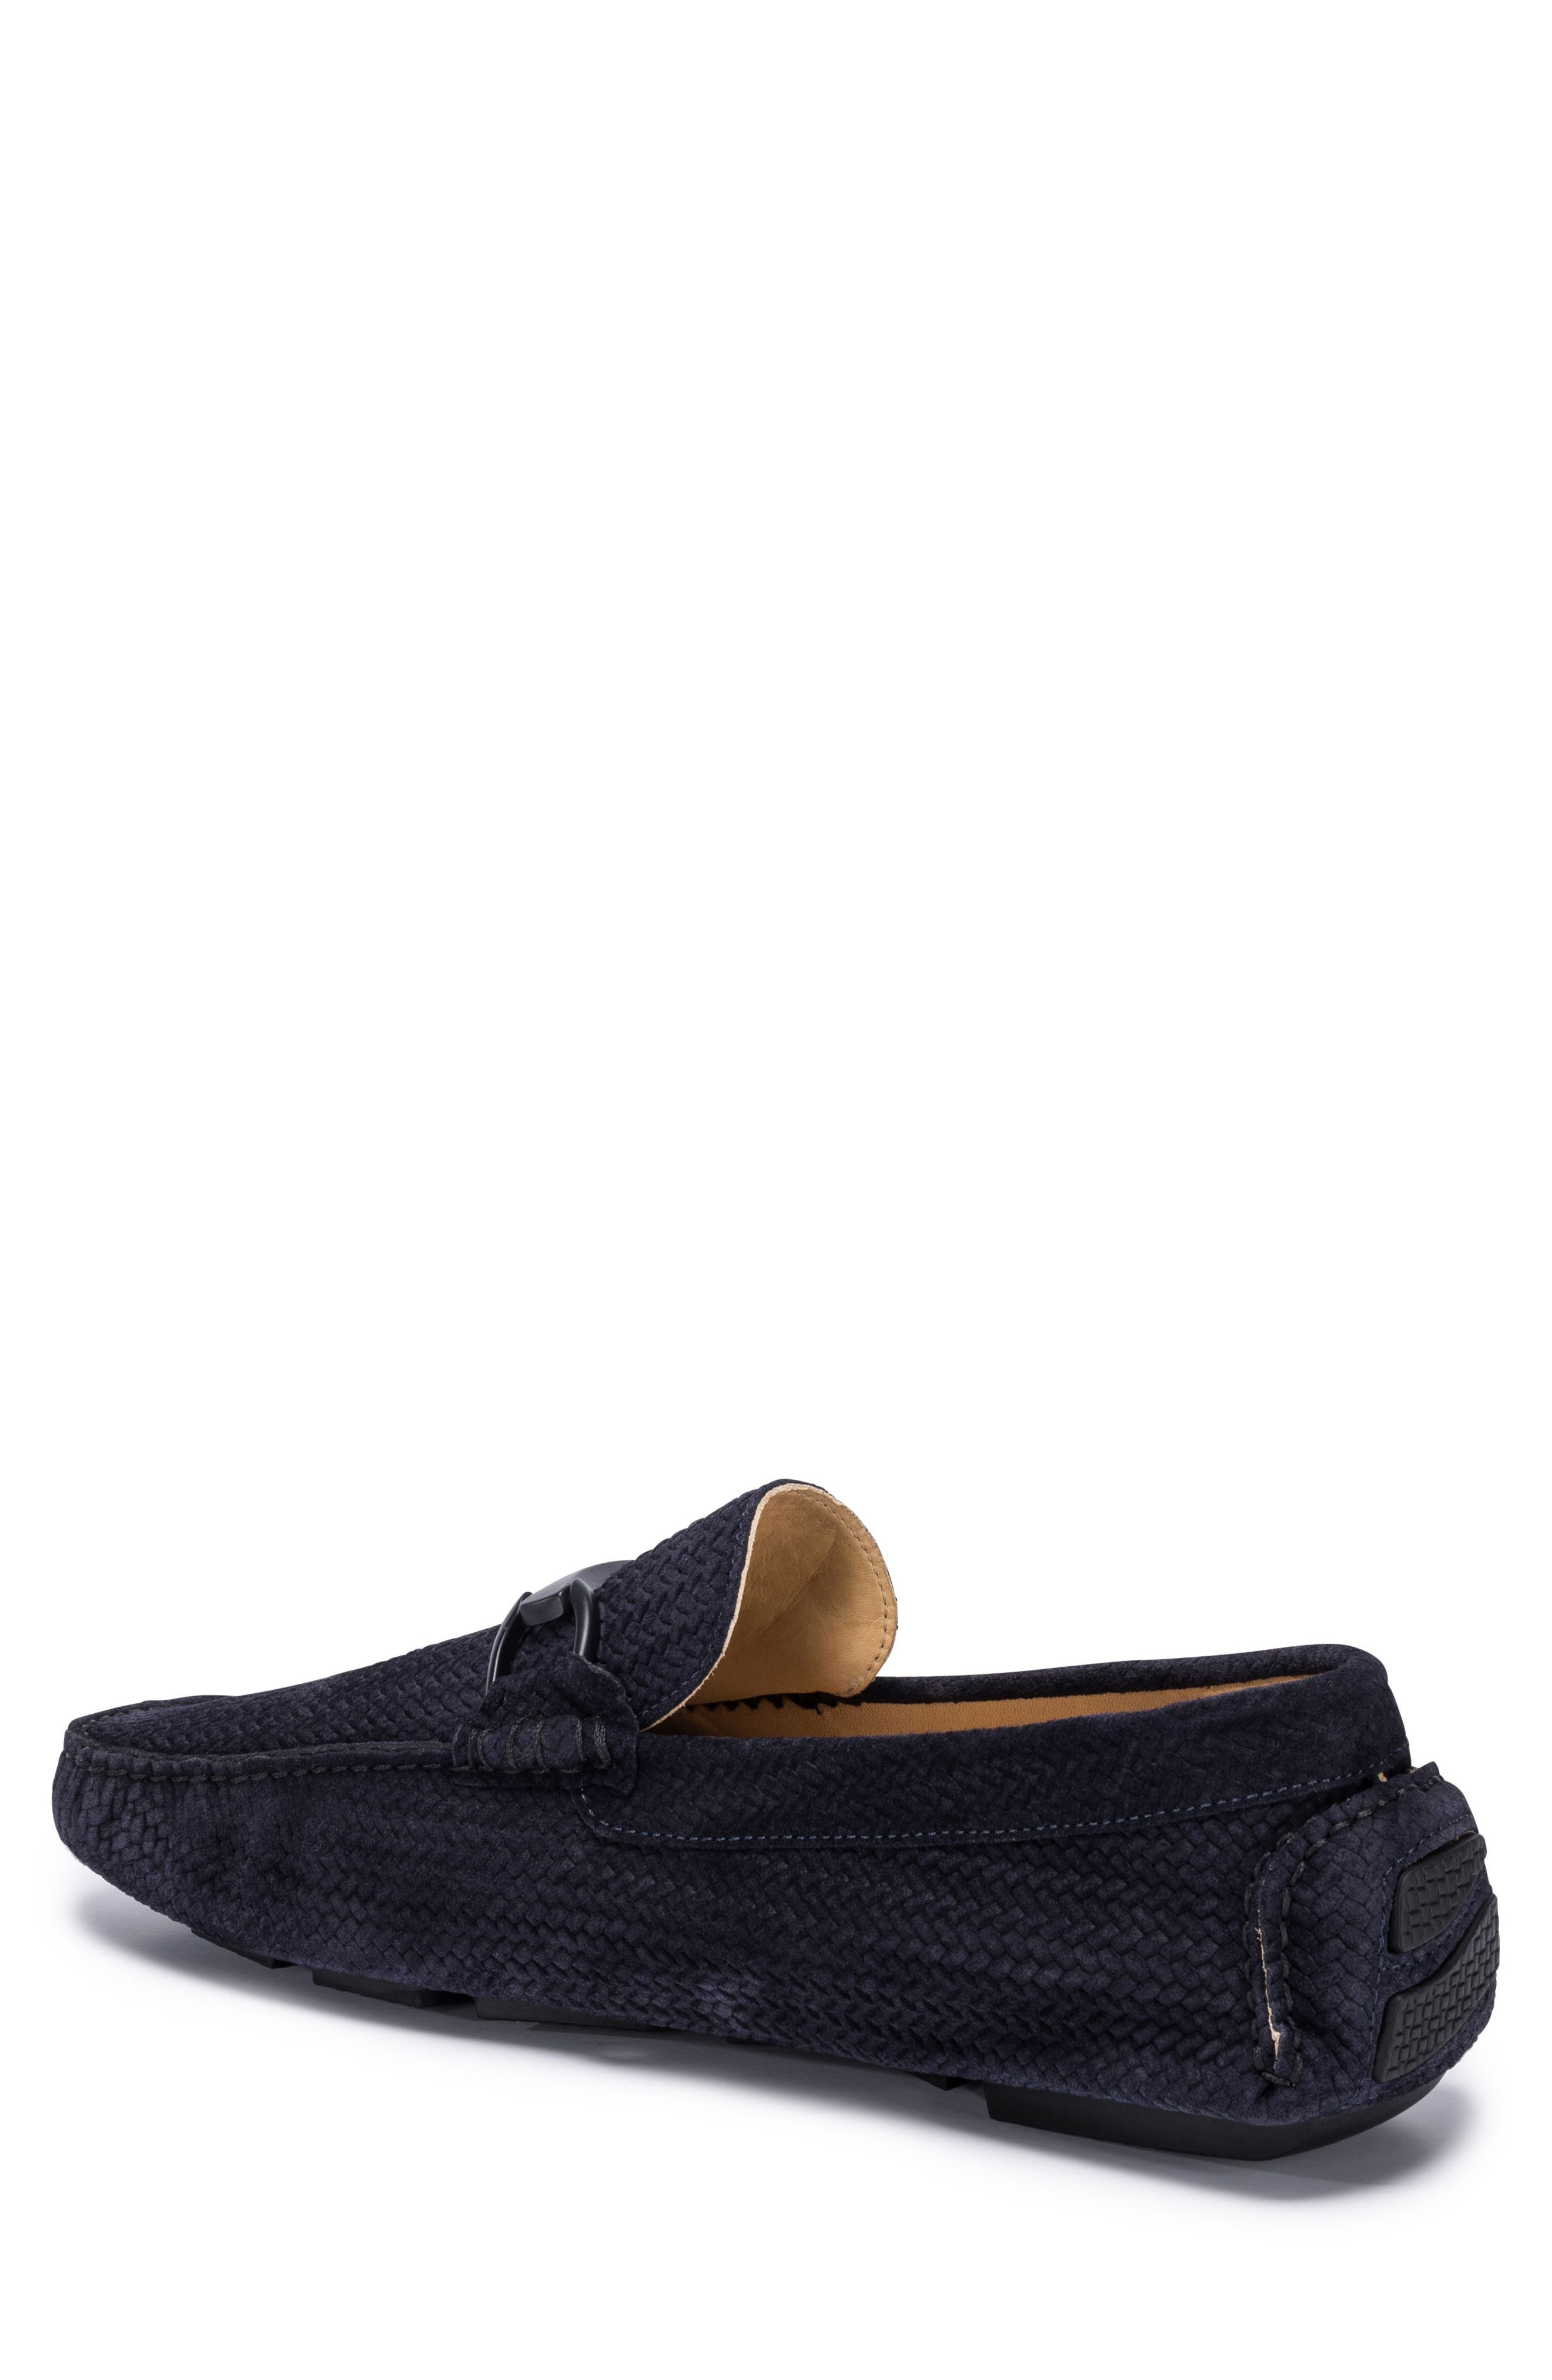 Amalfi Woven Bit Driving Loafer,                             Alternate thumbnail 2, color,                             Blue Suede